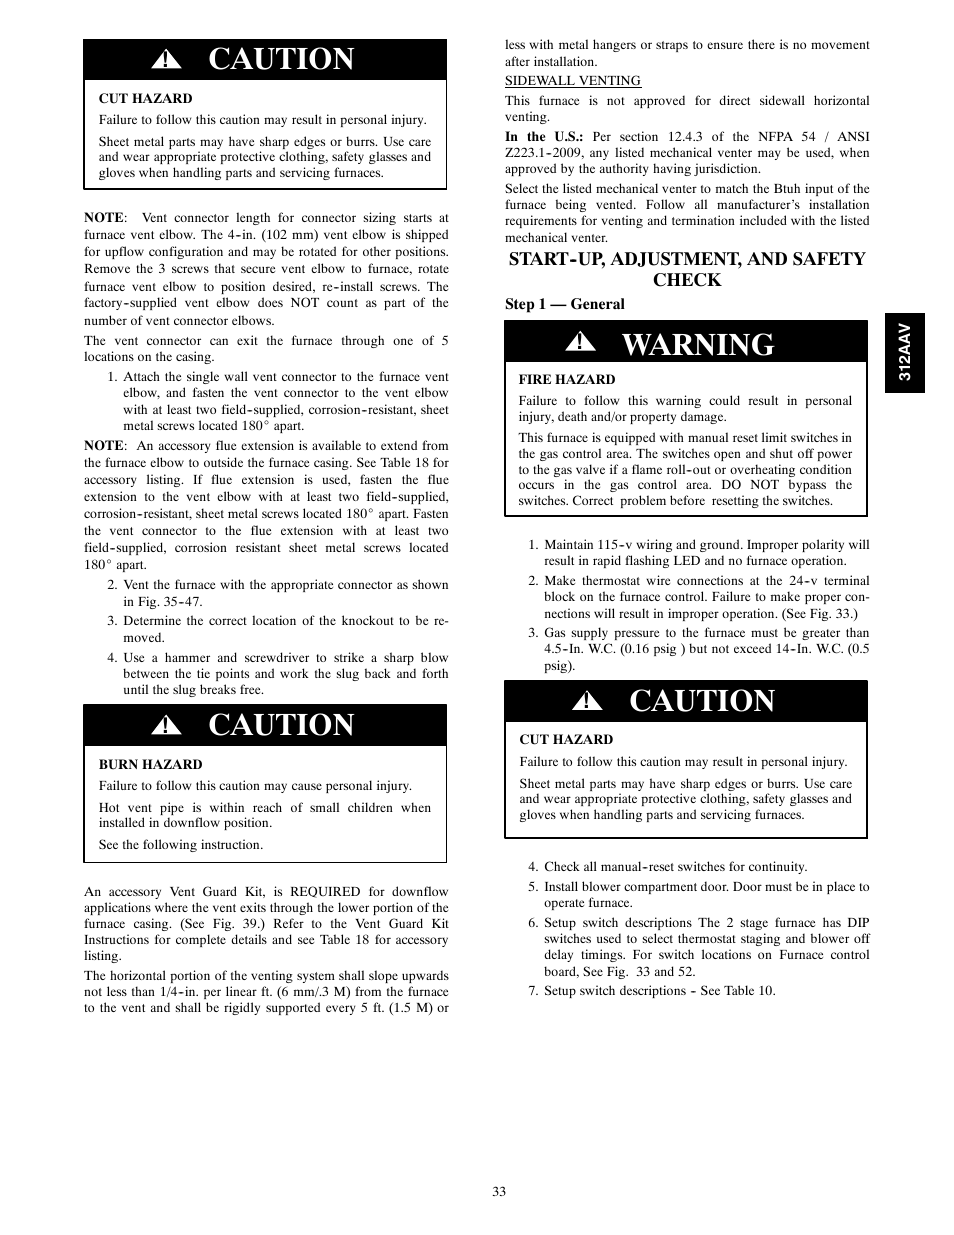 MNL-0721] Bryant Two Stage Gas Furnace Manual | 2019 Ebook Liry on gas valve safety, grill thermometer schematic, gas valve 24v wiring-diagram, gas valve dimensions, york heating schematic, millivolt gas valve schematic, gas valve specifications, gas heater wiring diagram, gas pool schematic, gas valve screwdriver, zone valve wiring schematic, gas log valve wiring diagram, gas valve connectors, gas wall heater thermostat wiring, gas valve operation, gas valves schematic diagrams, gas valve circuit board, gas wall heaters diagram, ducane 5 burner grill schematic, gas valve troubleshooting,